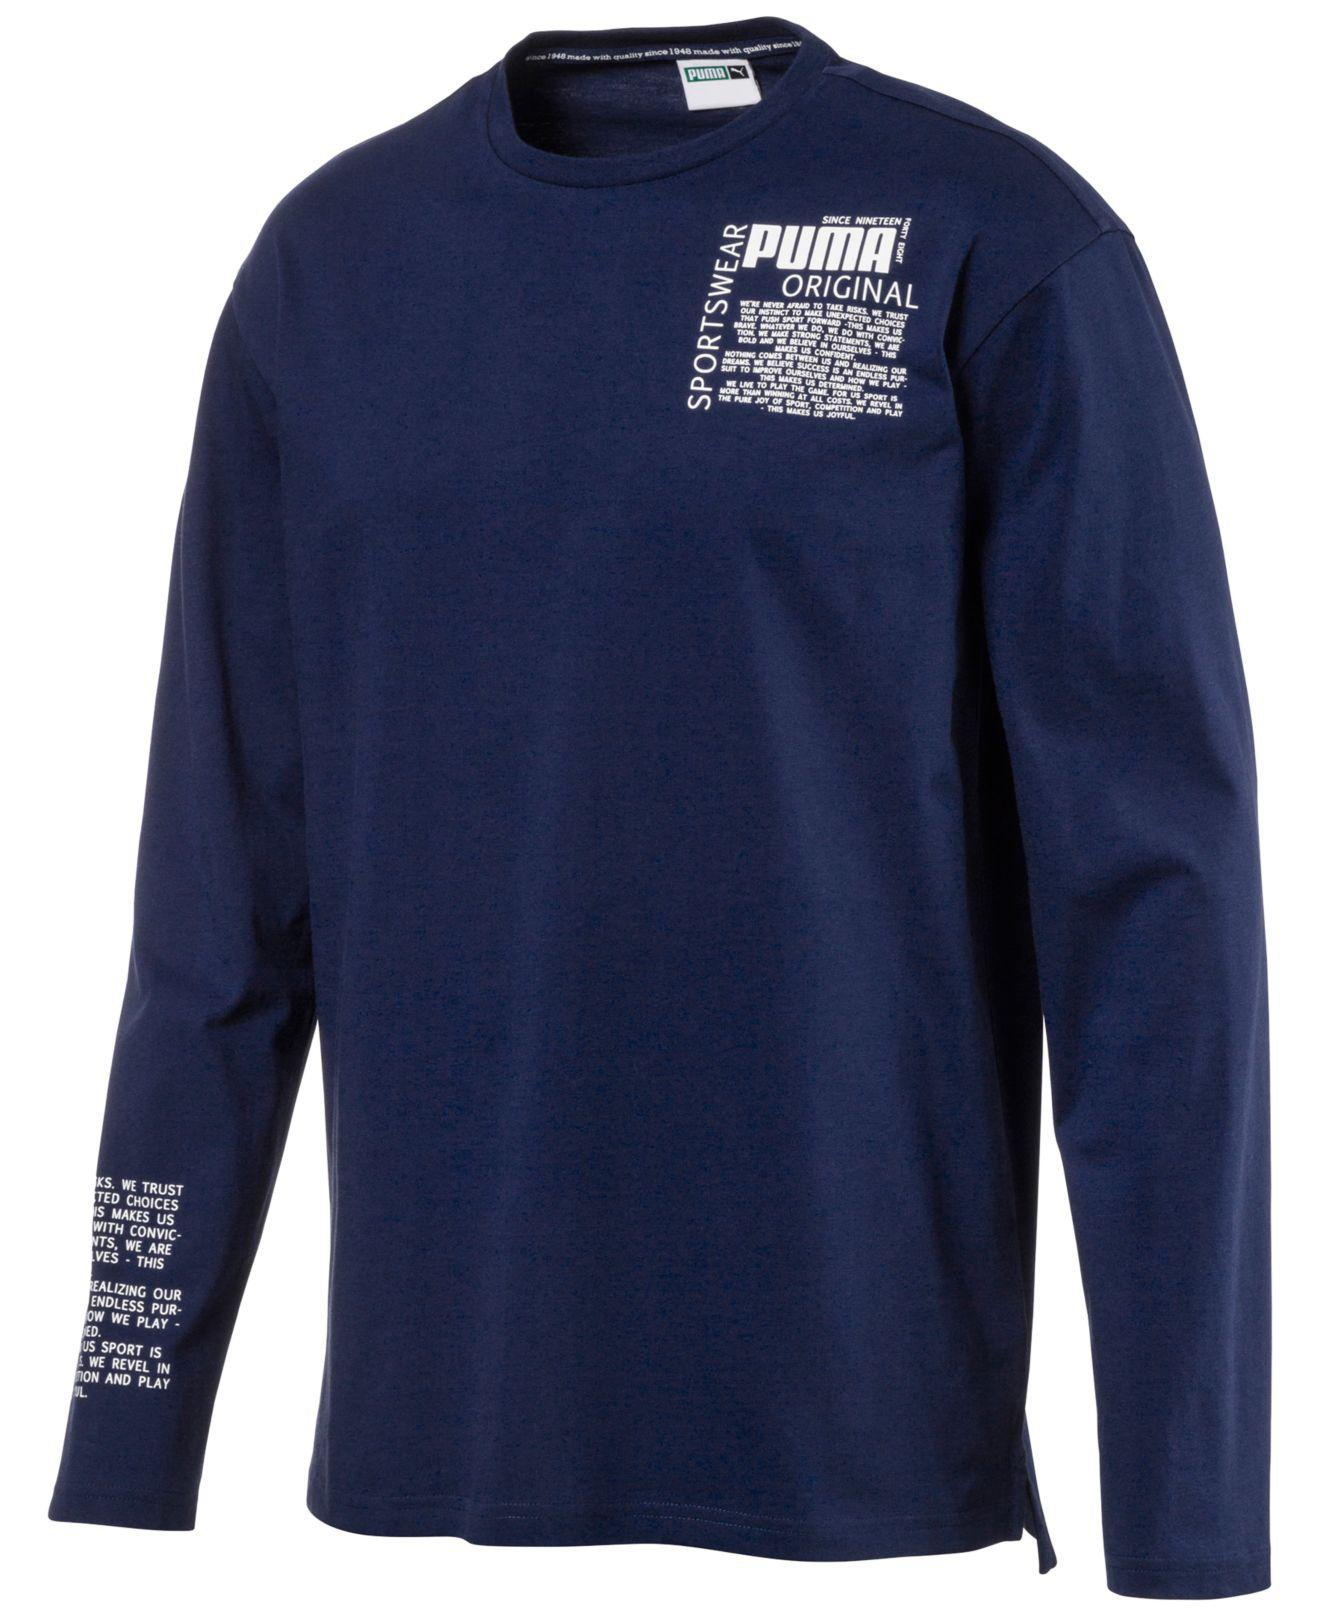 054cd9174a5 PUMA Men's Disrupt Drycell Long-sleeve T-shirt in Blue for Men - Lyst